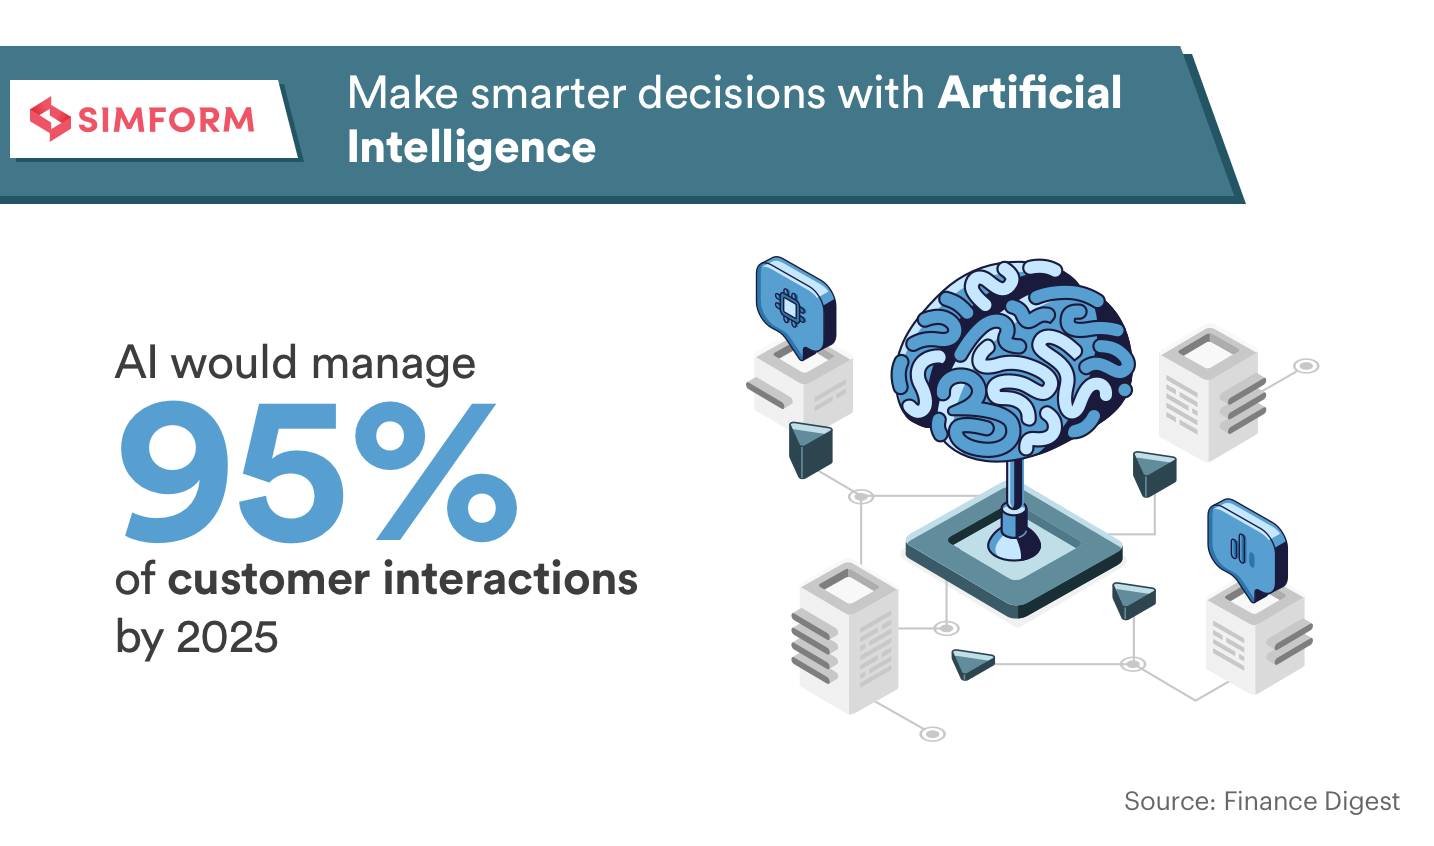 Smarter decisions from AI help boost sales